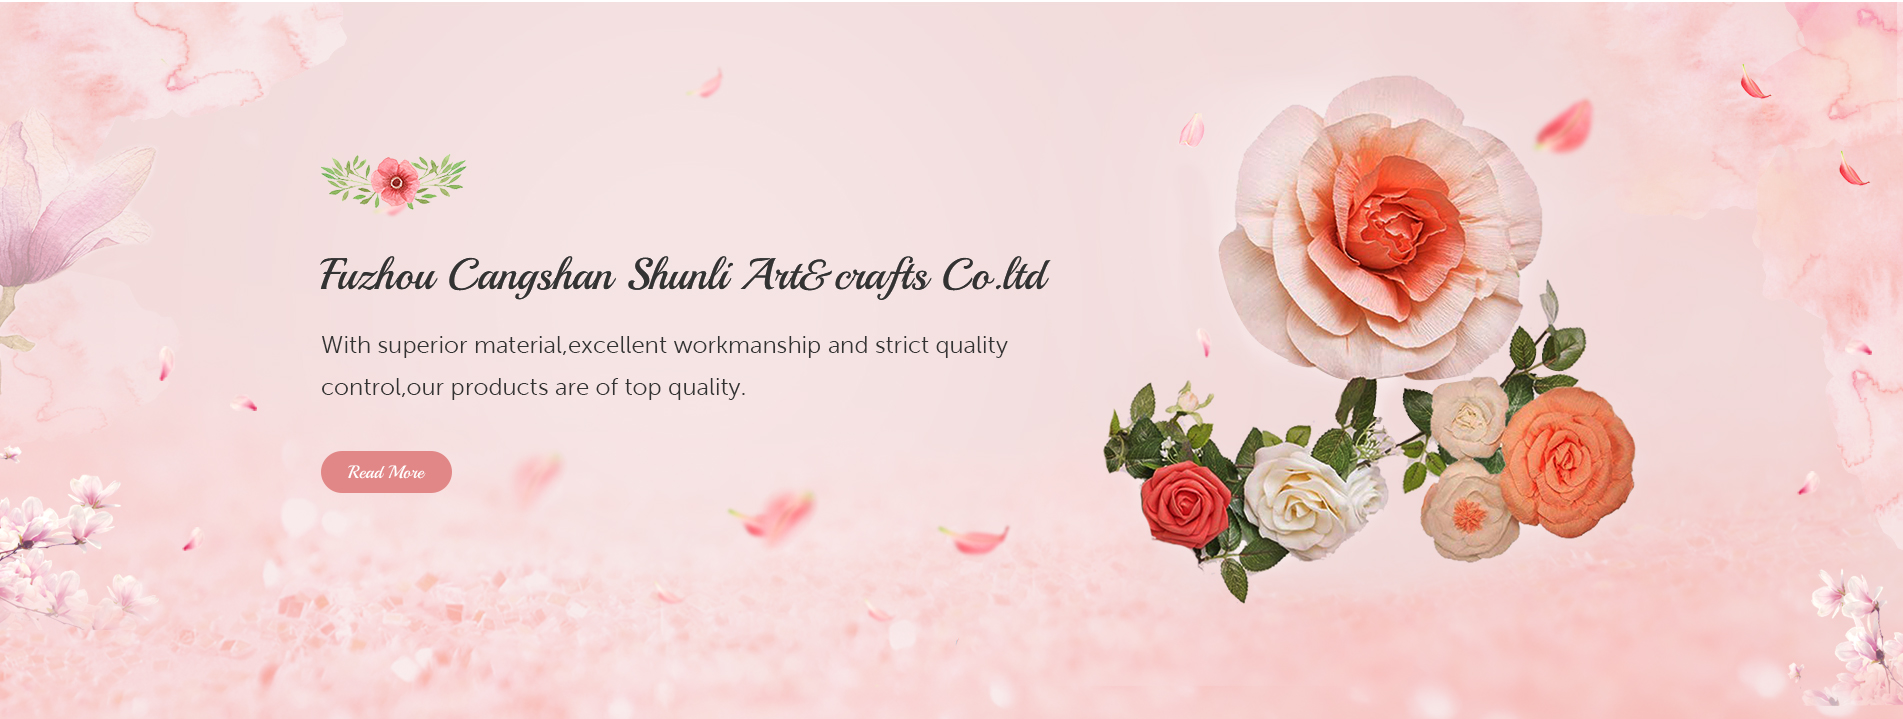 Fuzhou Cangshan Shunli Arts&Crafts  Co., Ltd.